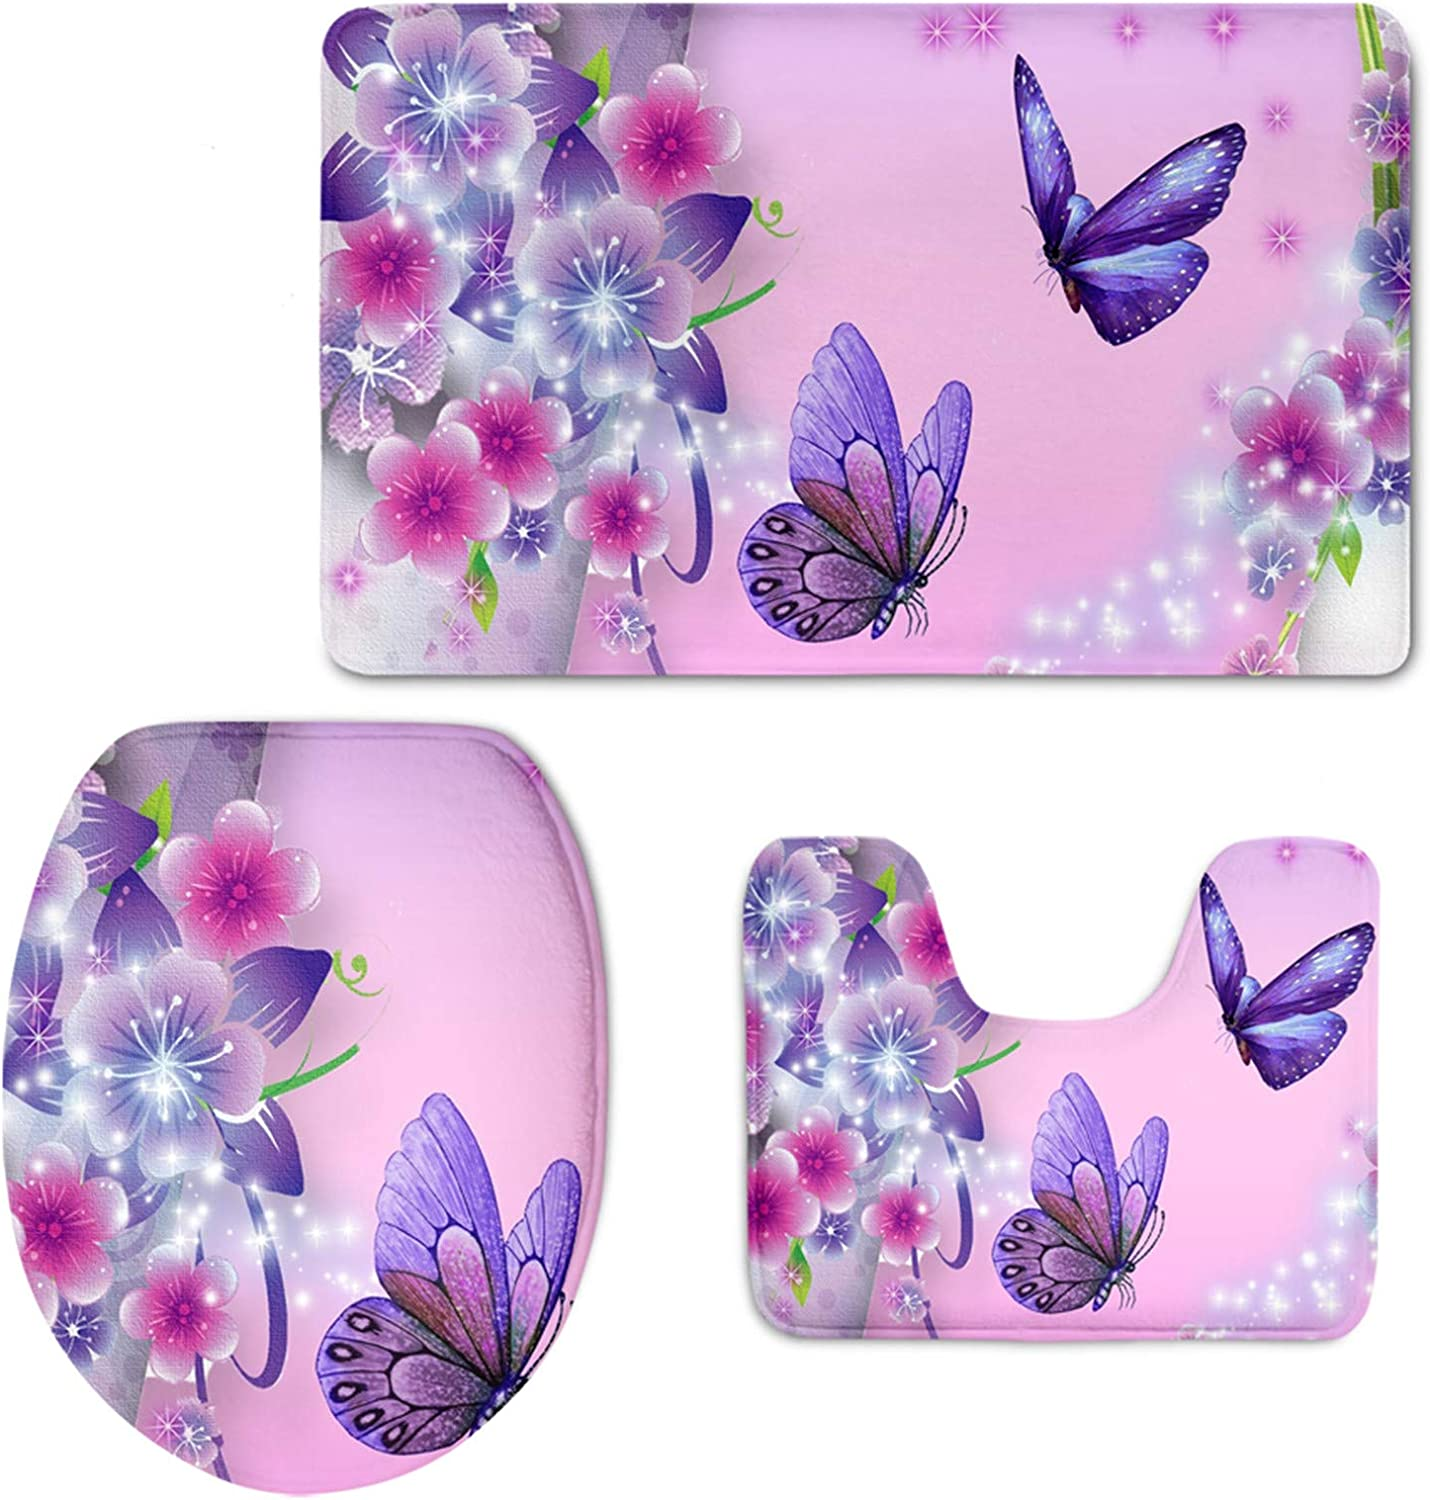 BEAUTIFUL BUTTERFLY NOVALTY NON SLIP 60CMX110CM SILVER PINK TEAL QUALITY RUGS